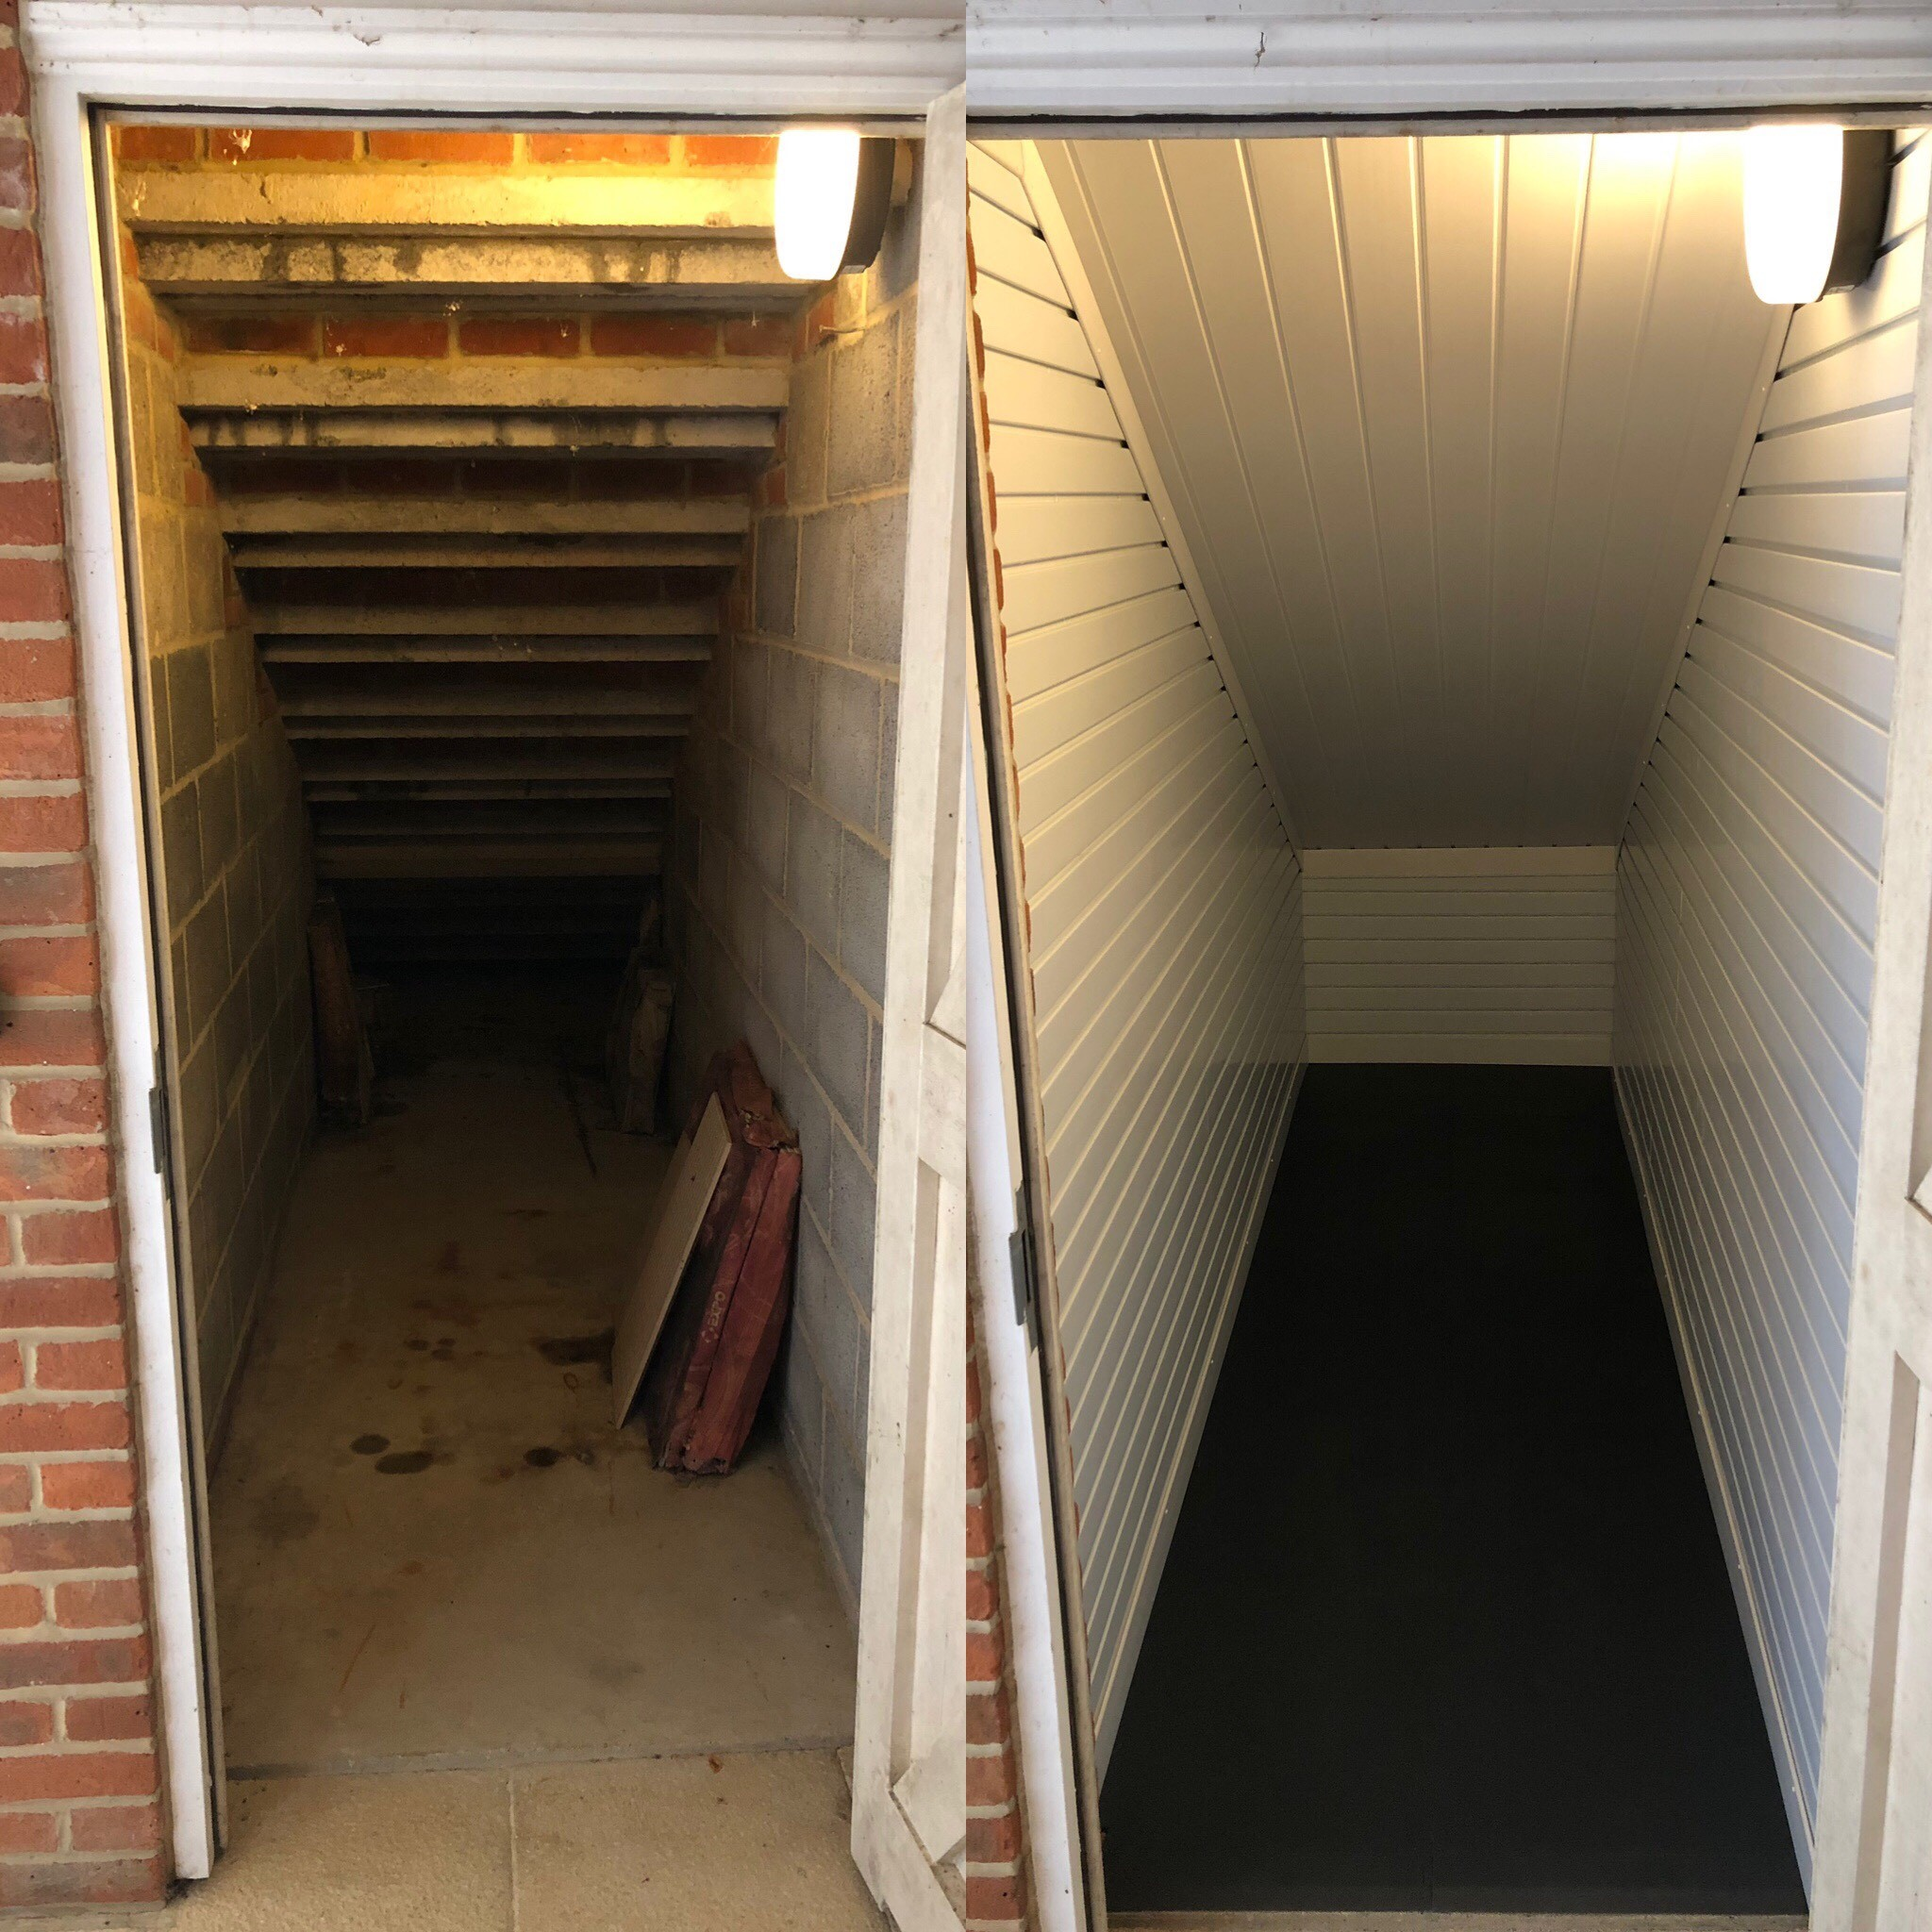 Spider Room Before and After